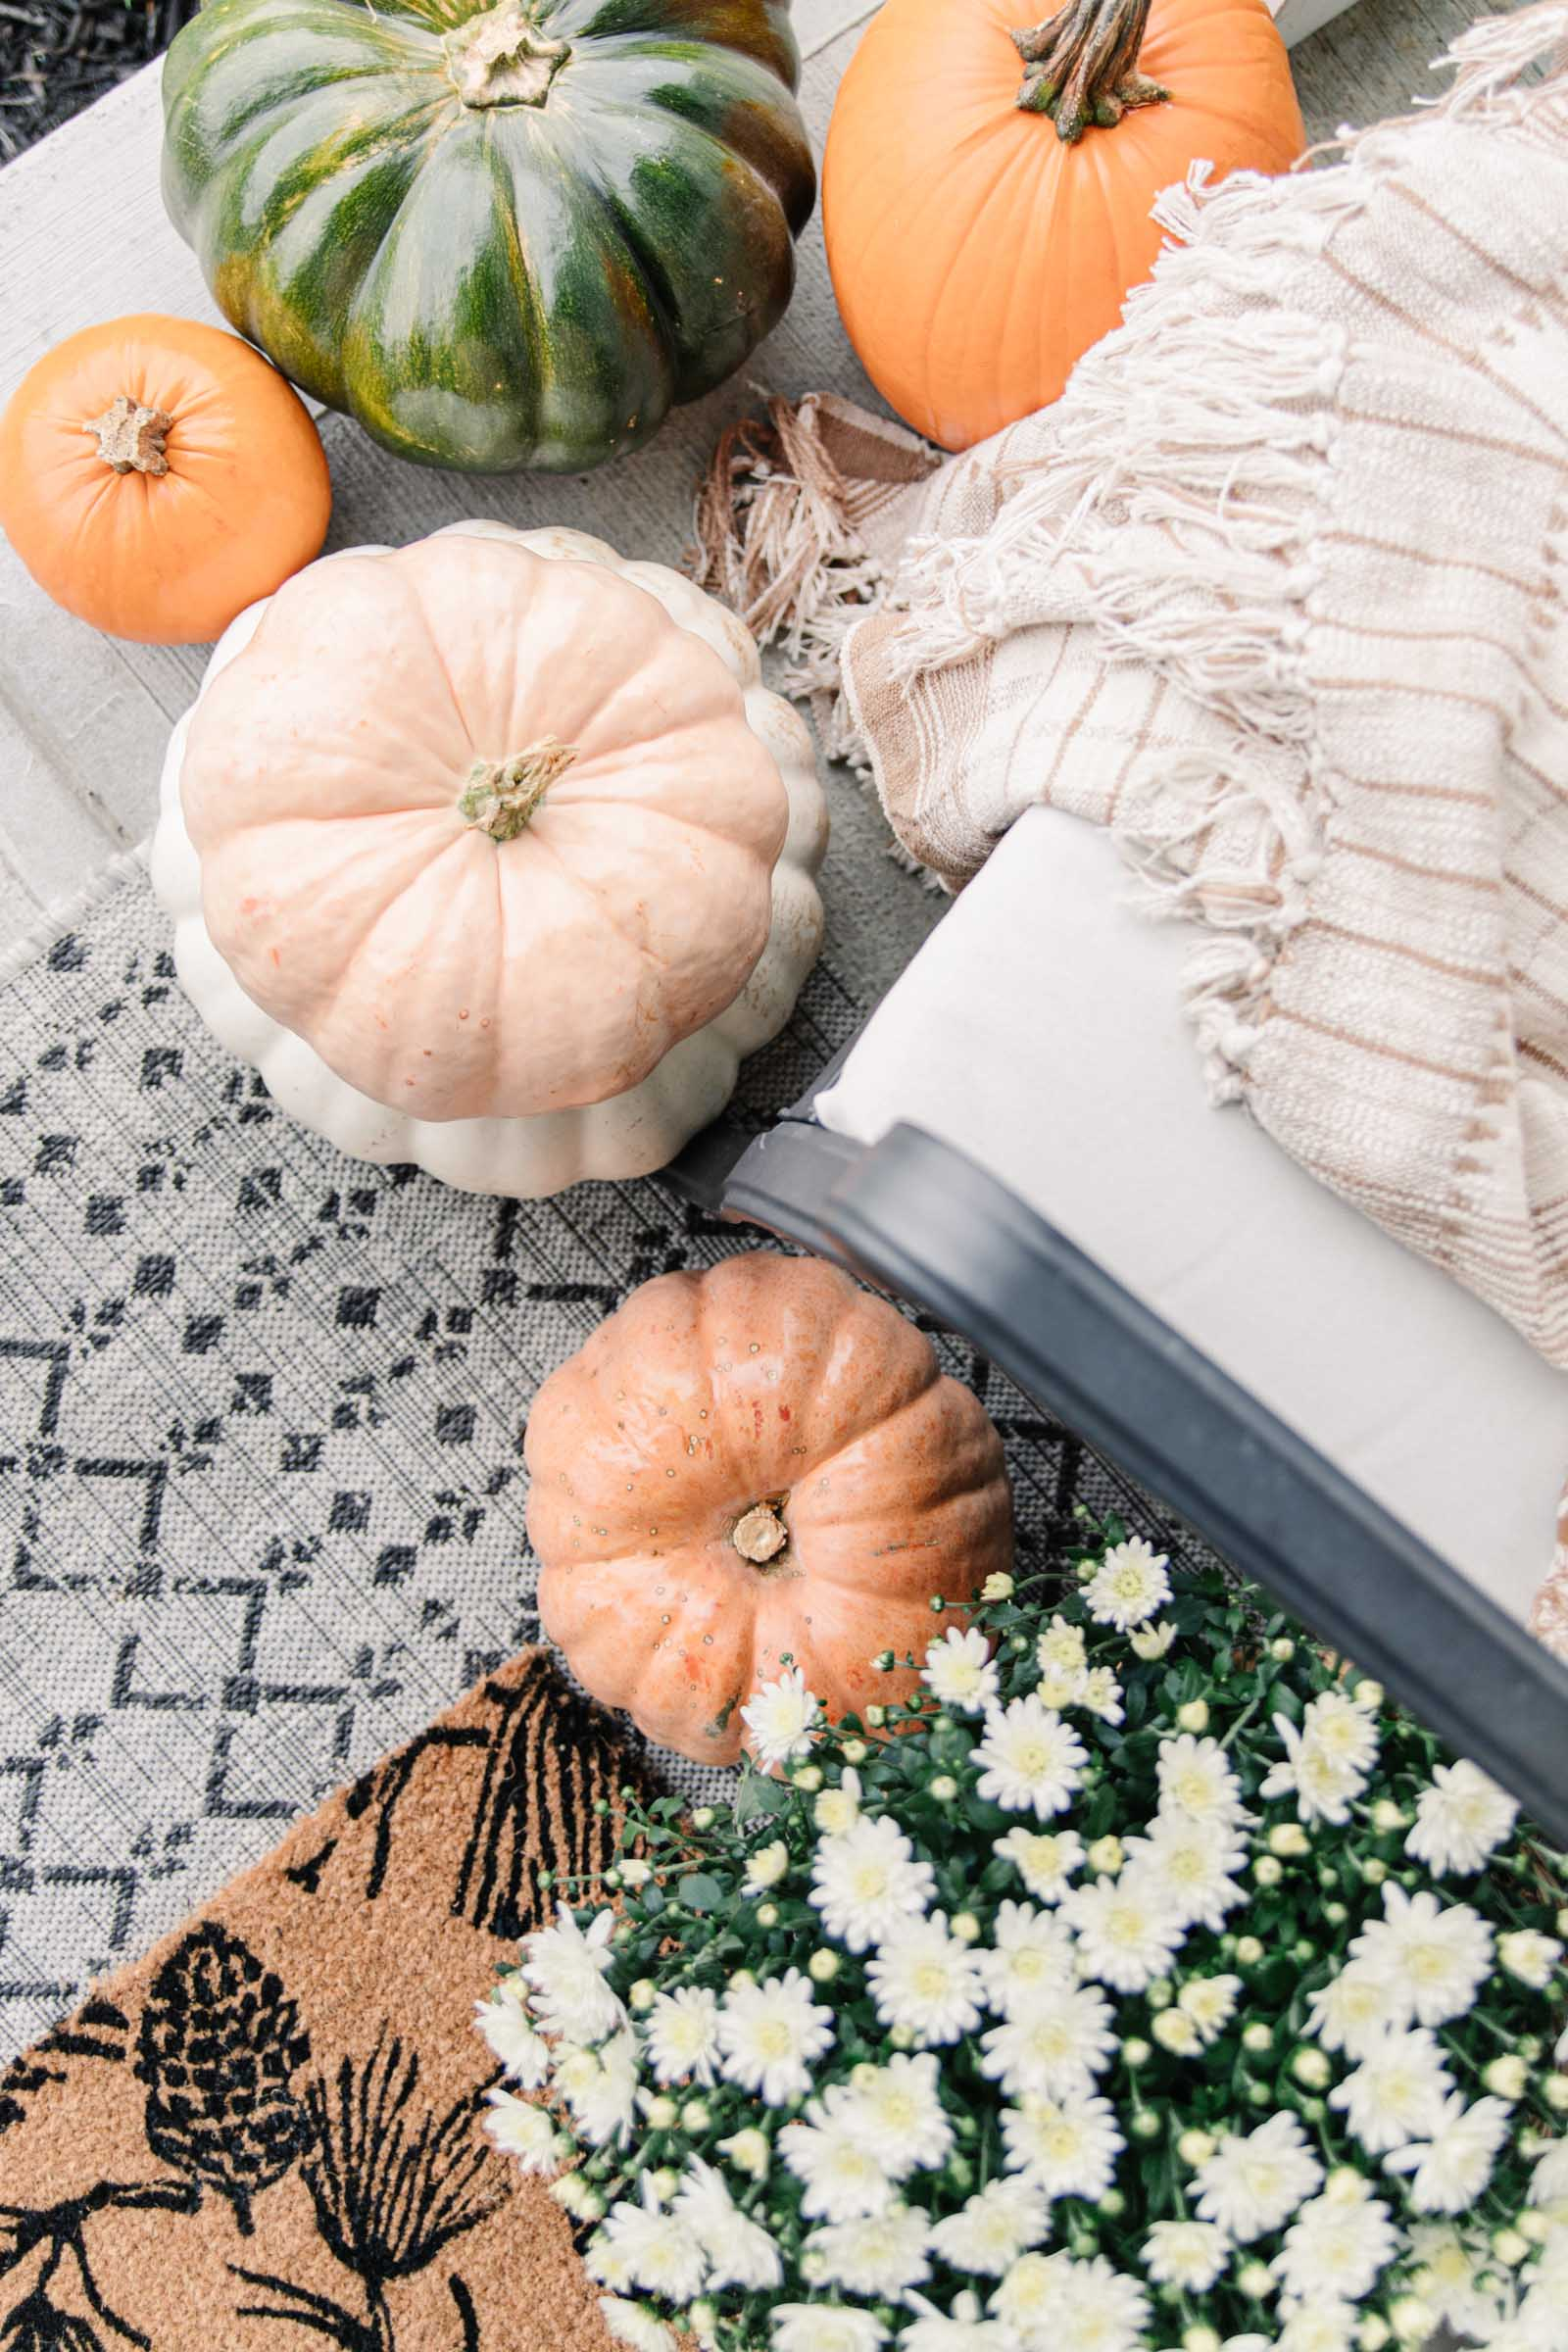 Fall Front Porch with Cinderella Pumpkins   fairytale pumpkins, cozy fall porch, fall aesthetic, white mums, layered doormats, plaid throw